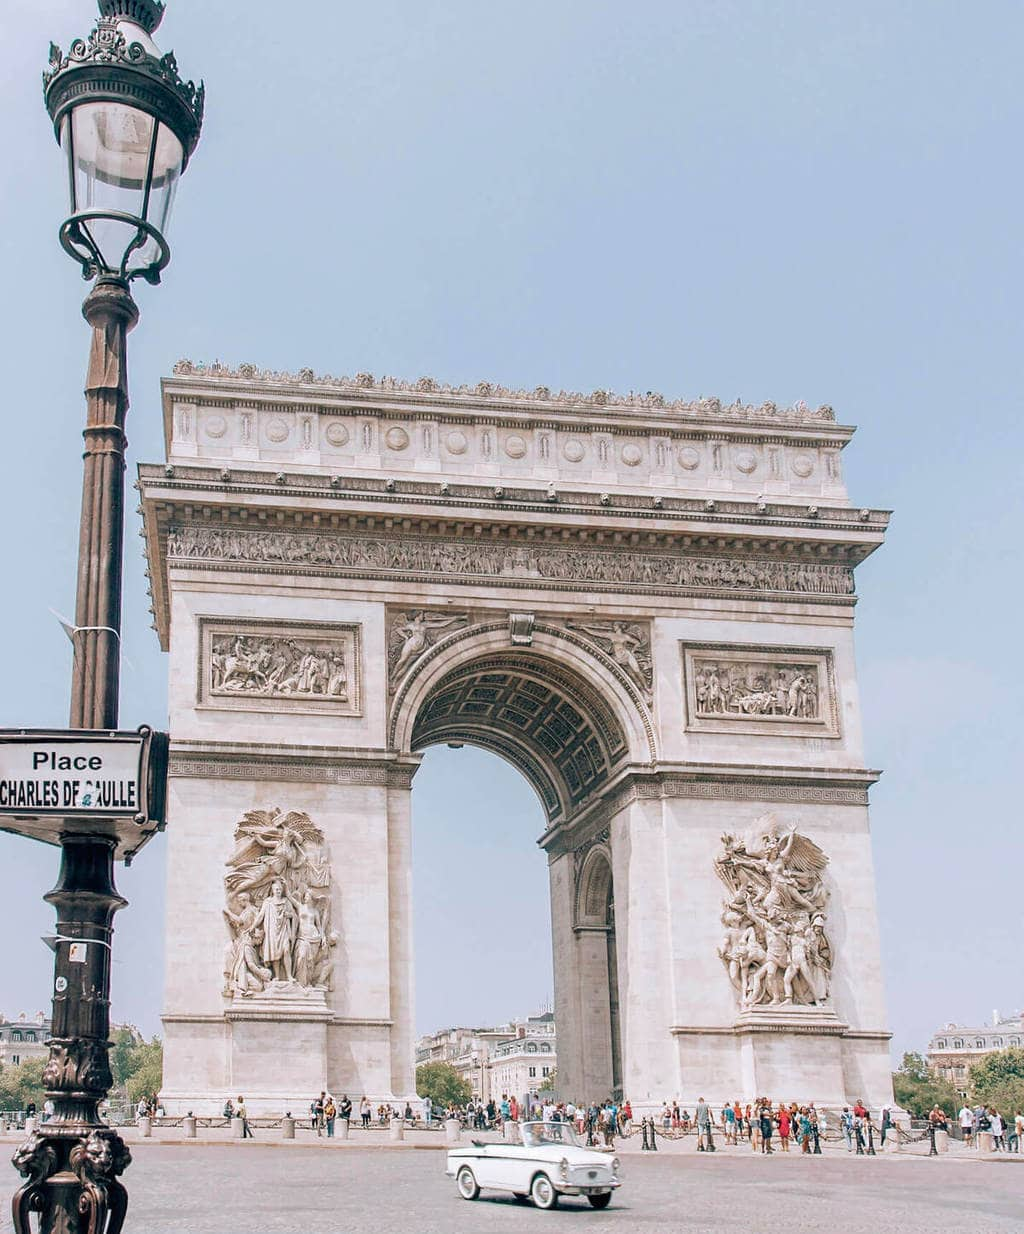 An old car drives past the Arc de Triomphe in Paris. Find lots of Paris travel tips in this guide to Paris at New Year's.